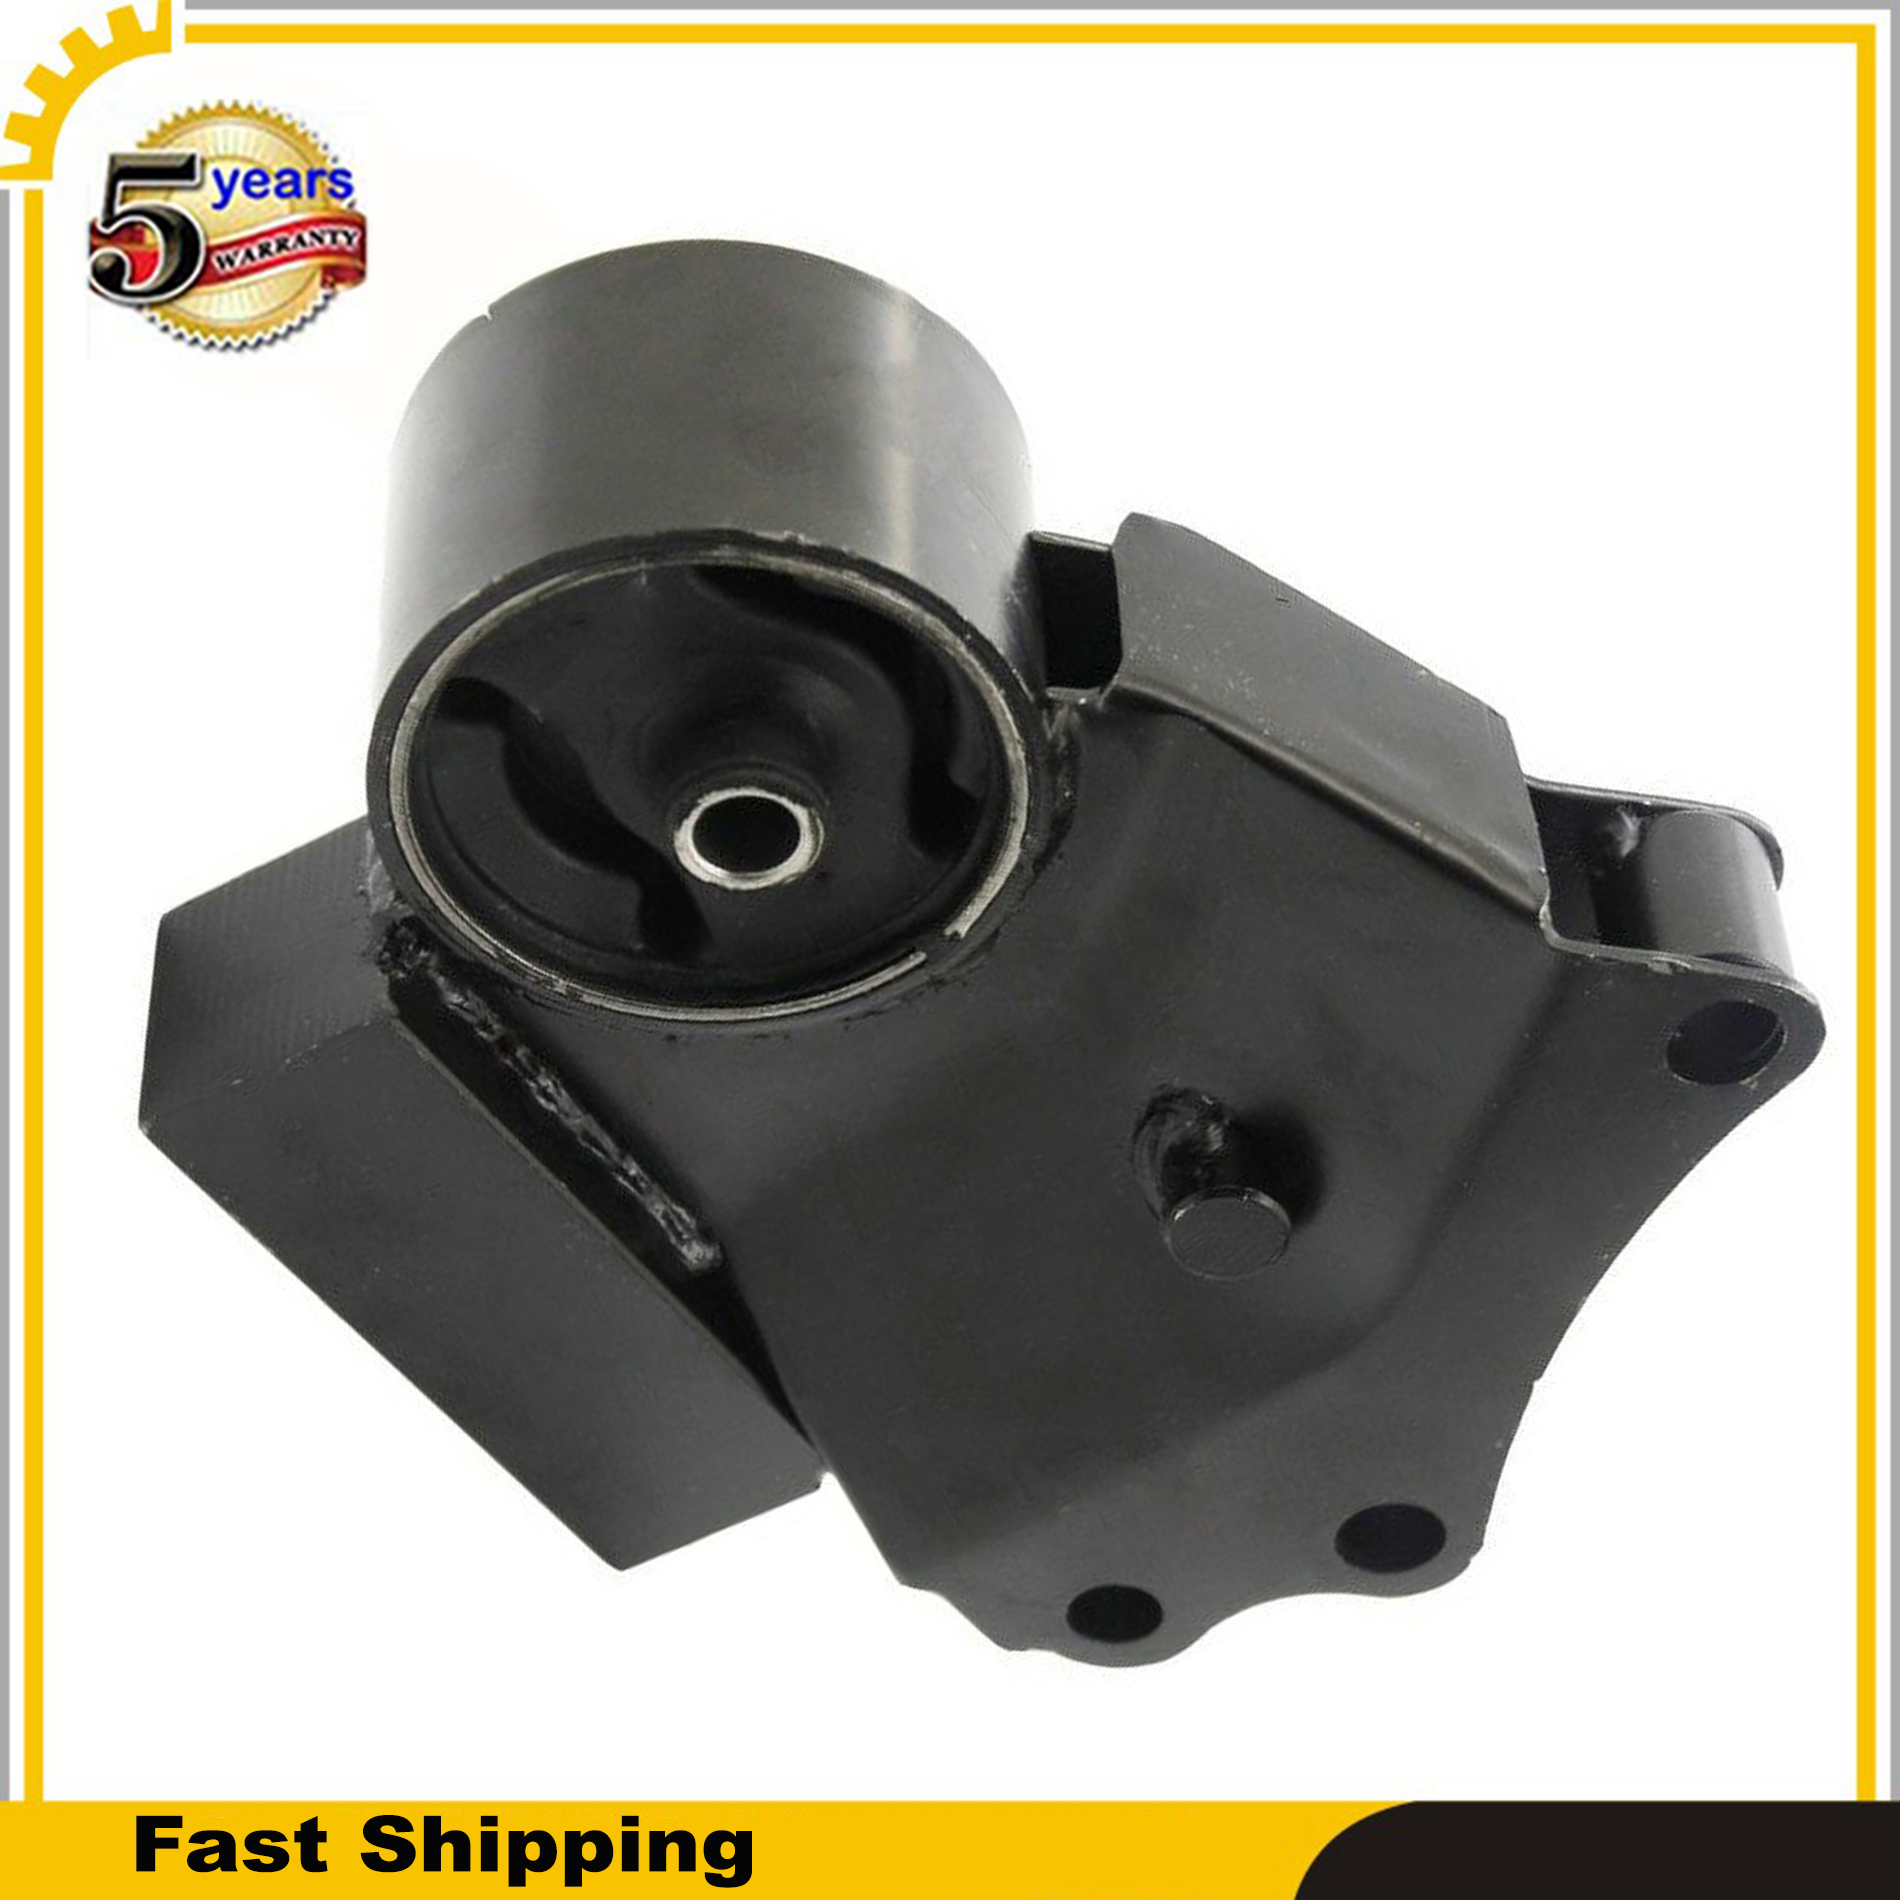 Transmission Motor Mount 1.8 L For Kia Sephia Automatic